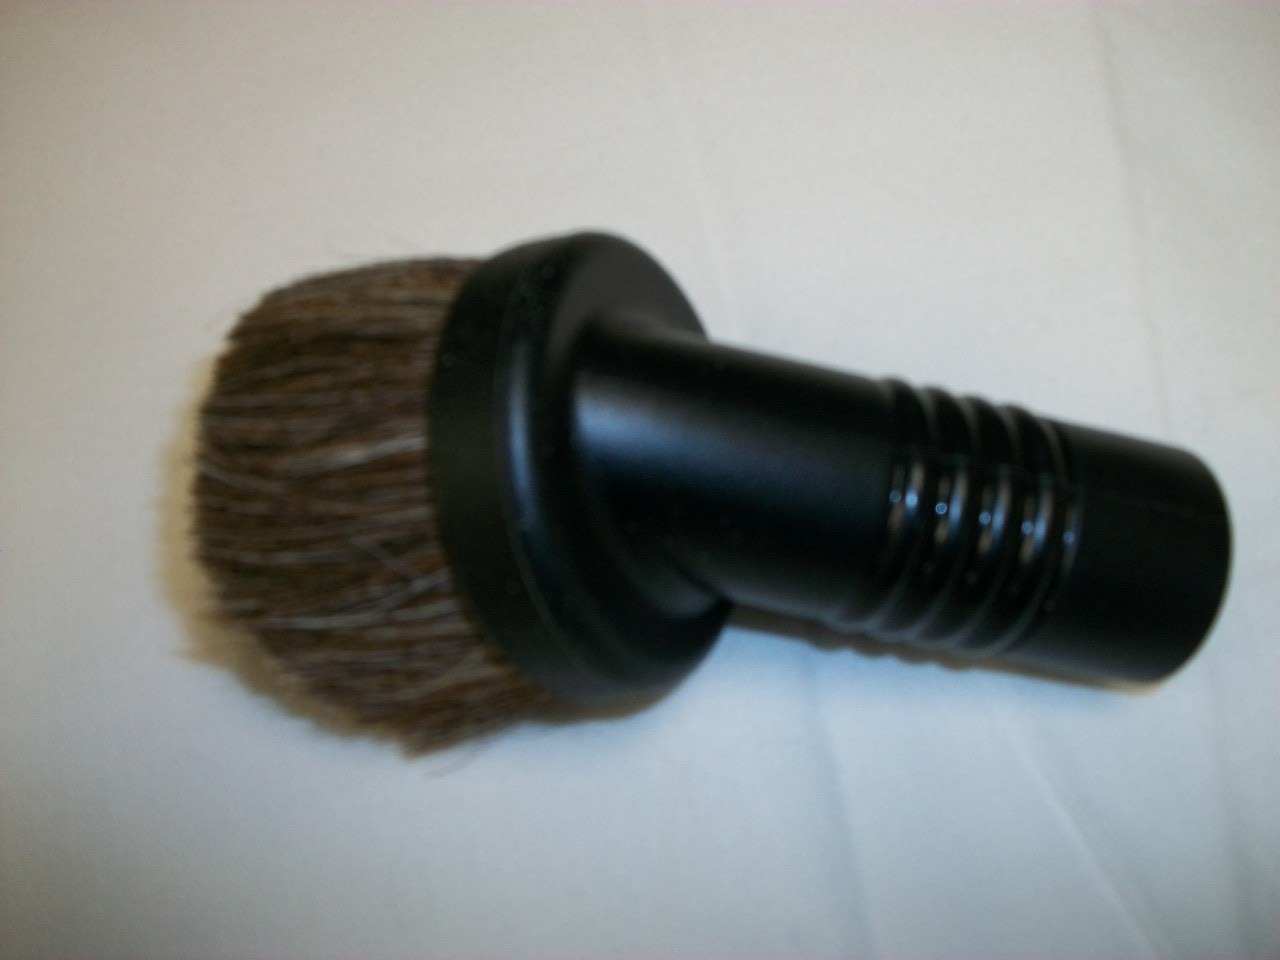 Kirby Dust Brush For the G6